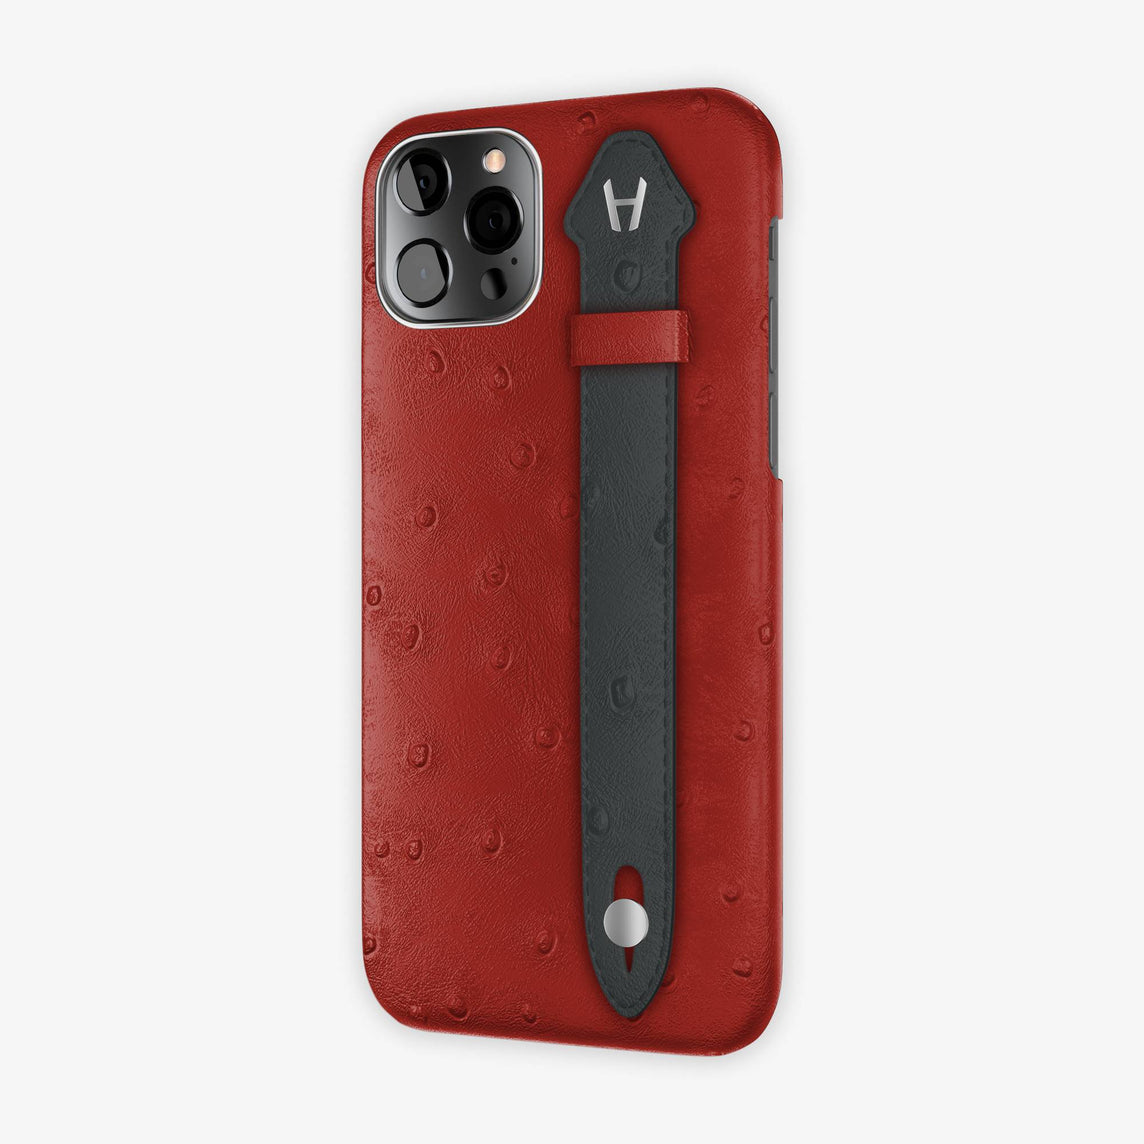 Ostrich Side Finger Case iPhone 12 Pro | Red/Anthracite - Stainless Steel